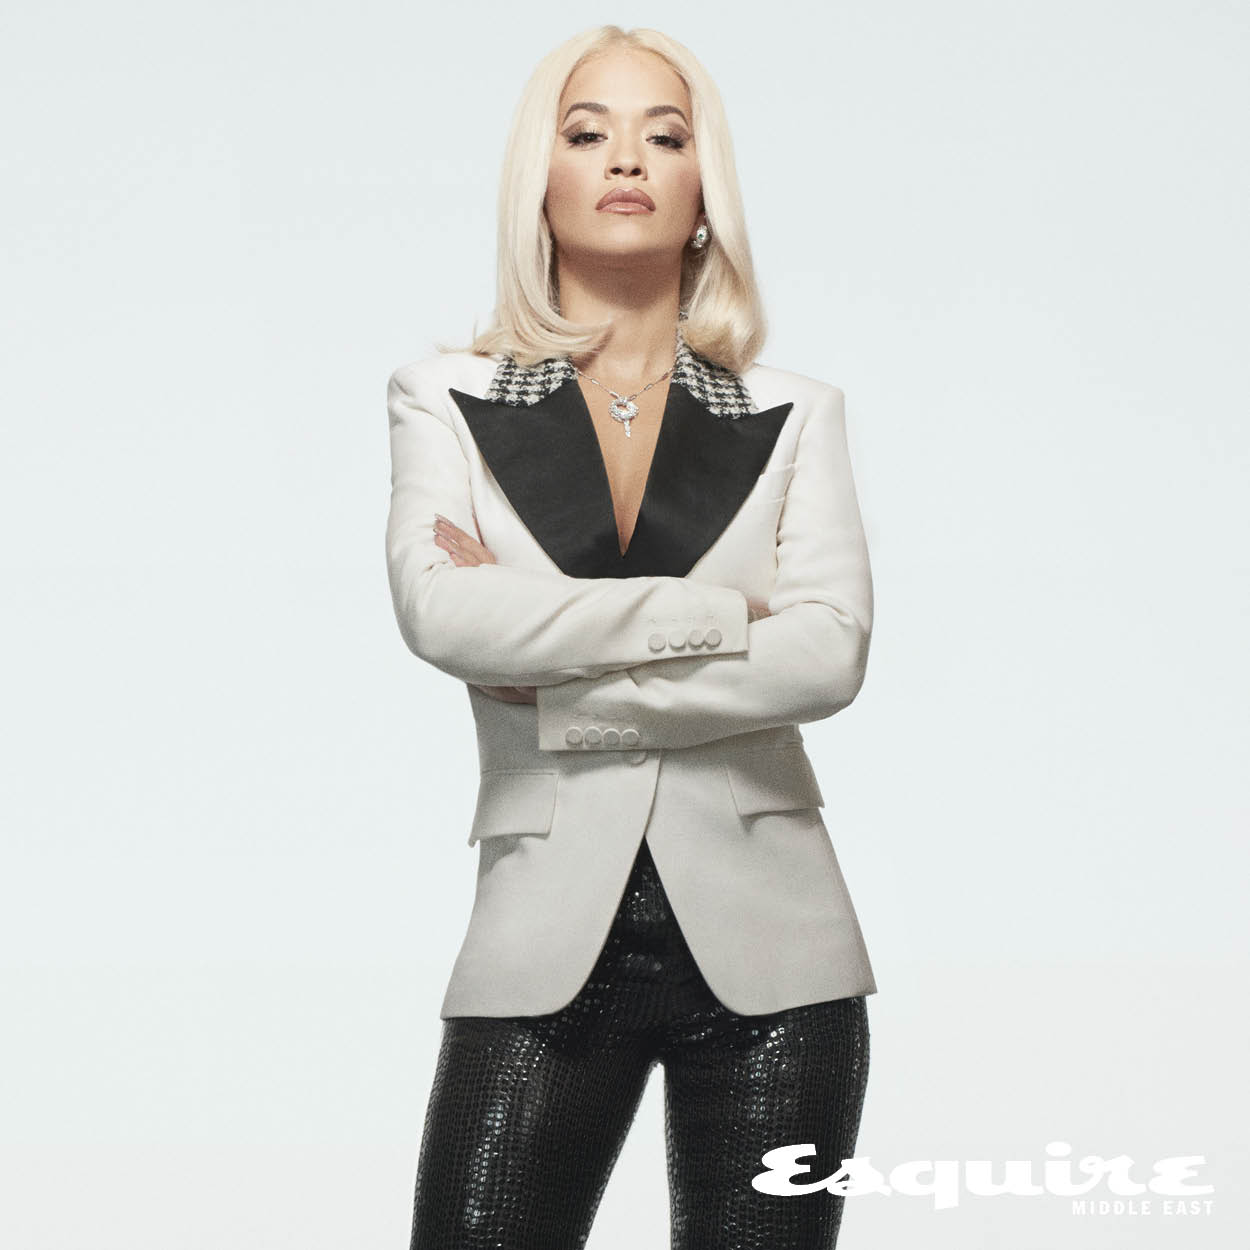 Rita Ora for Esquire Middle East October 2018